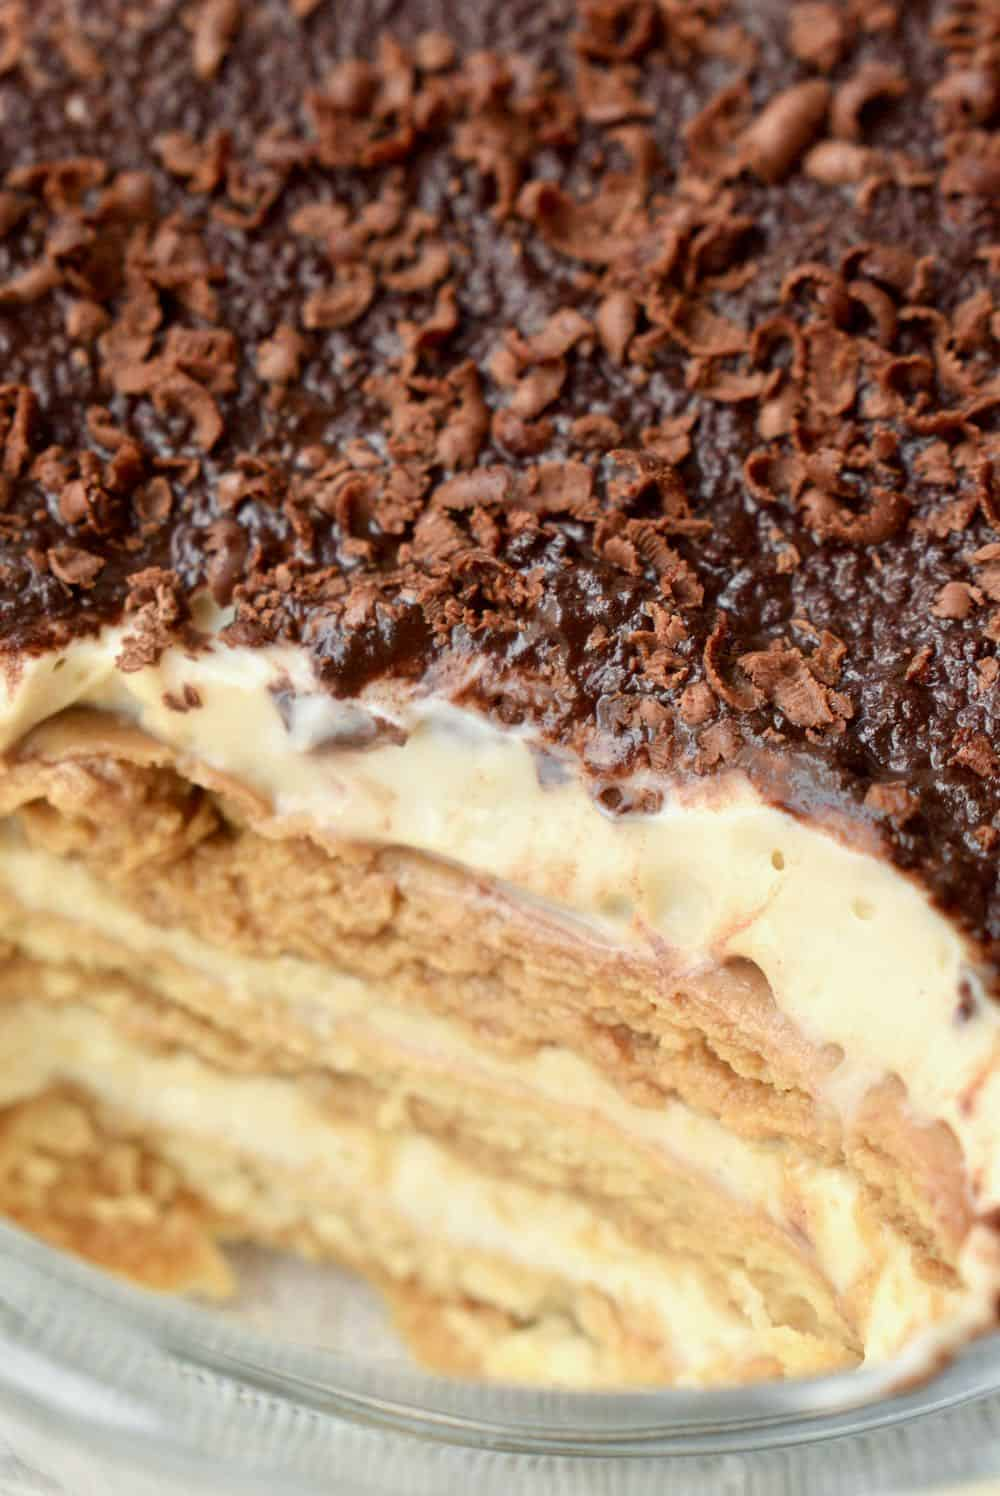 A close up shows the rich creamy layer, the coffee soaked biscuits and dark chocolate topping